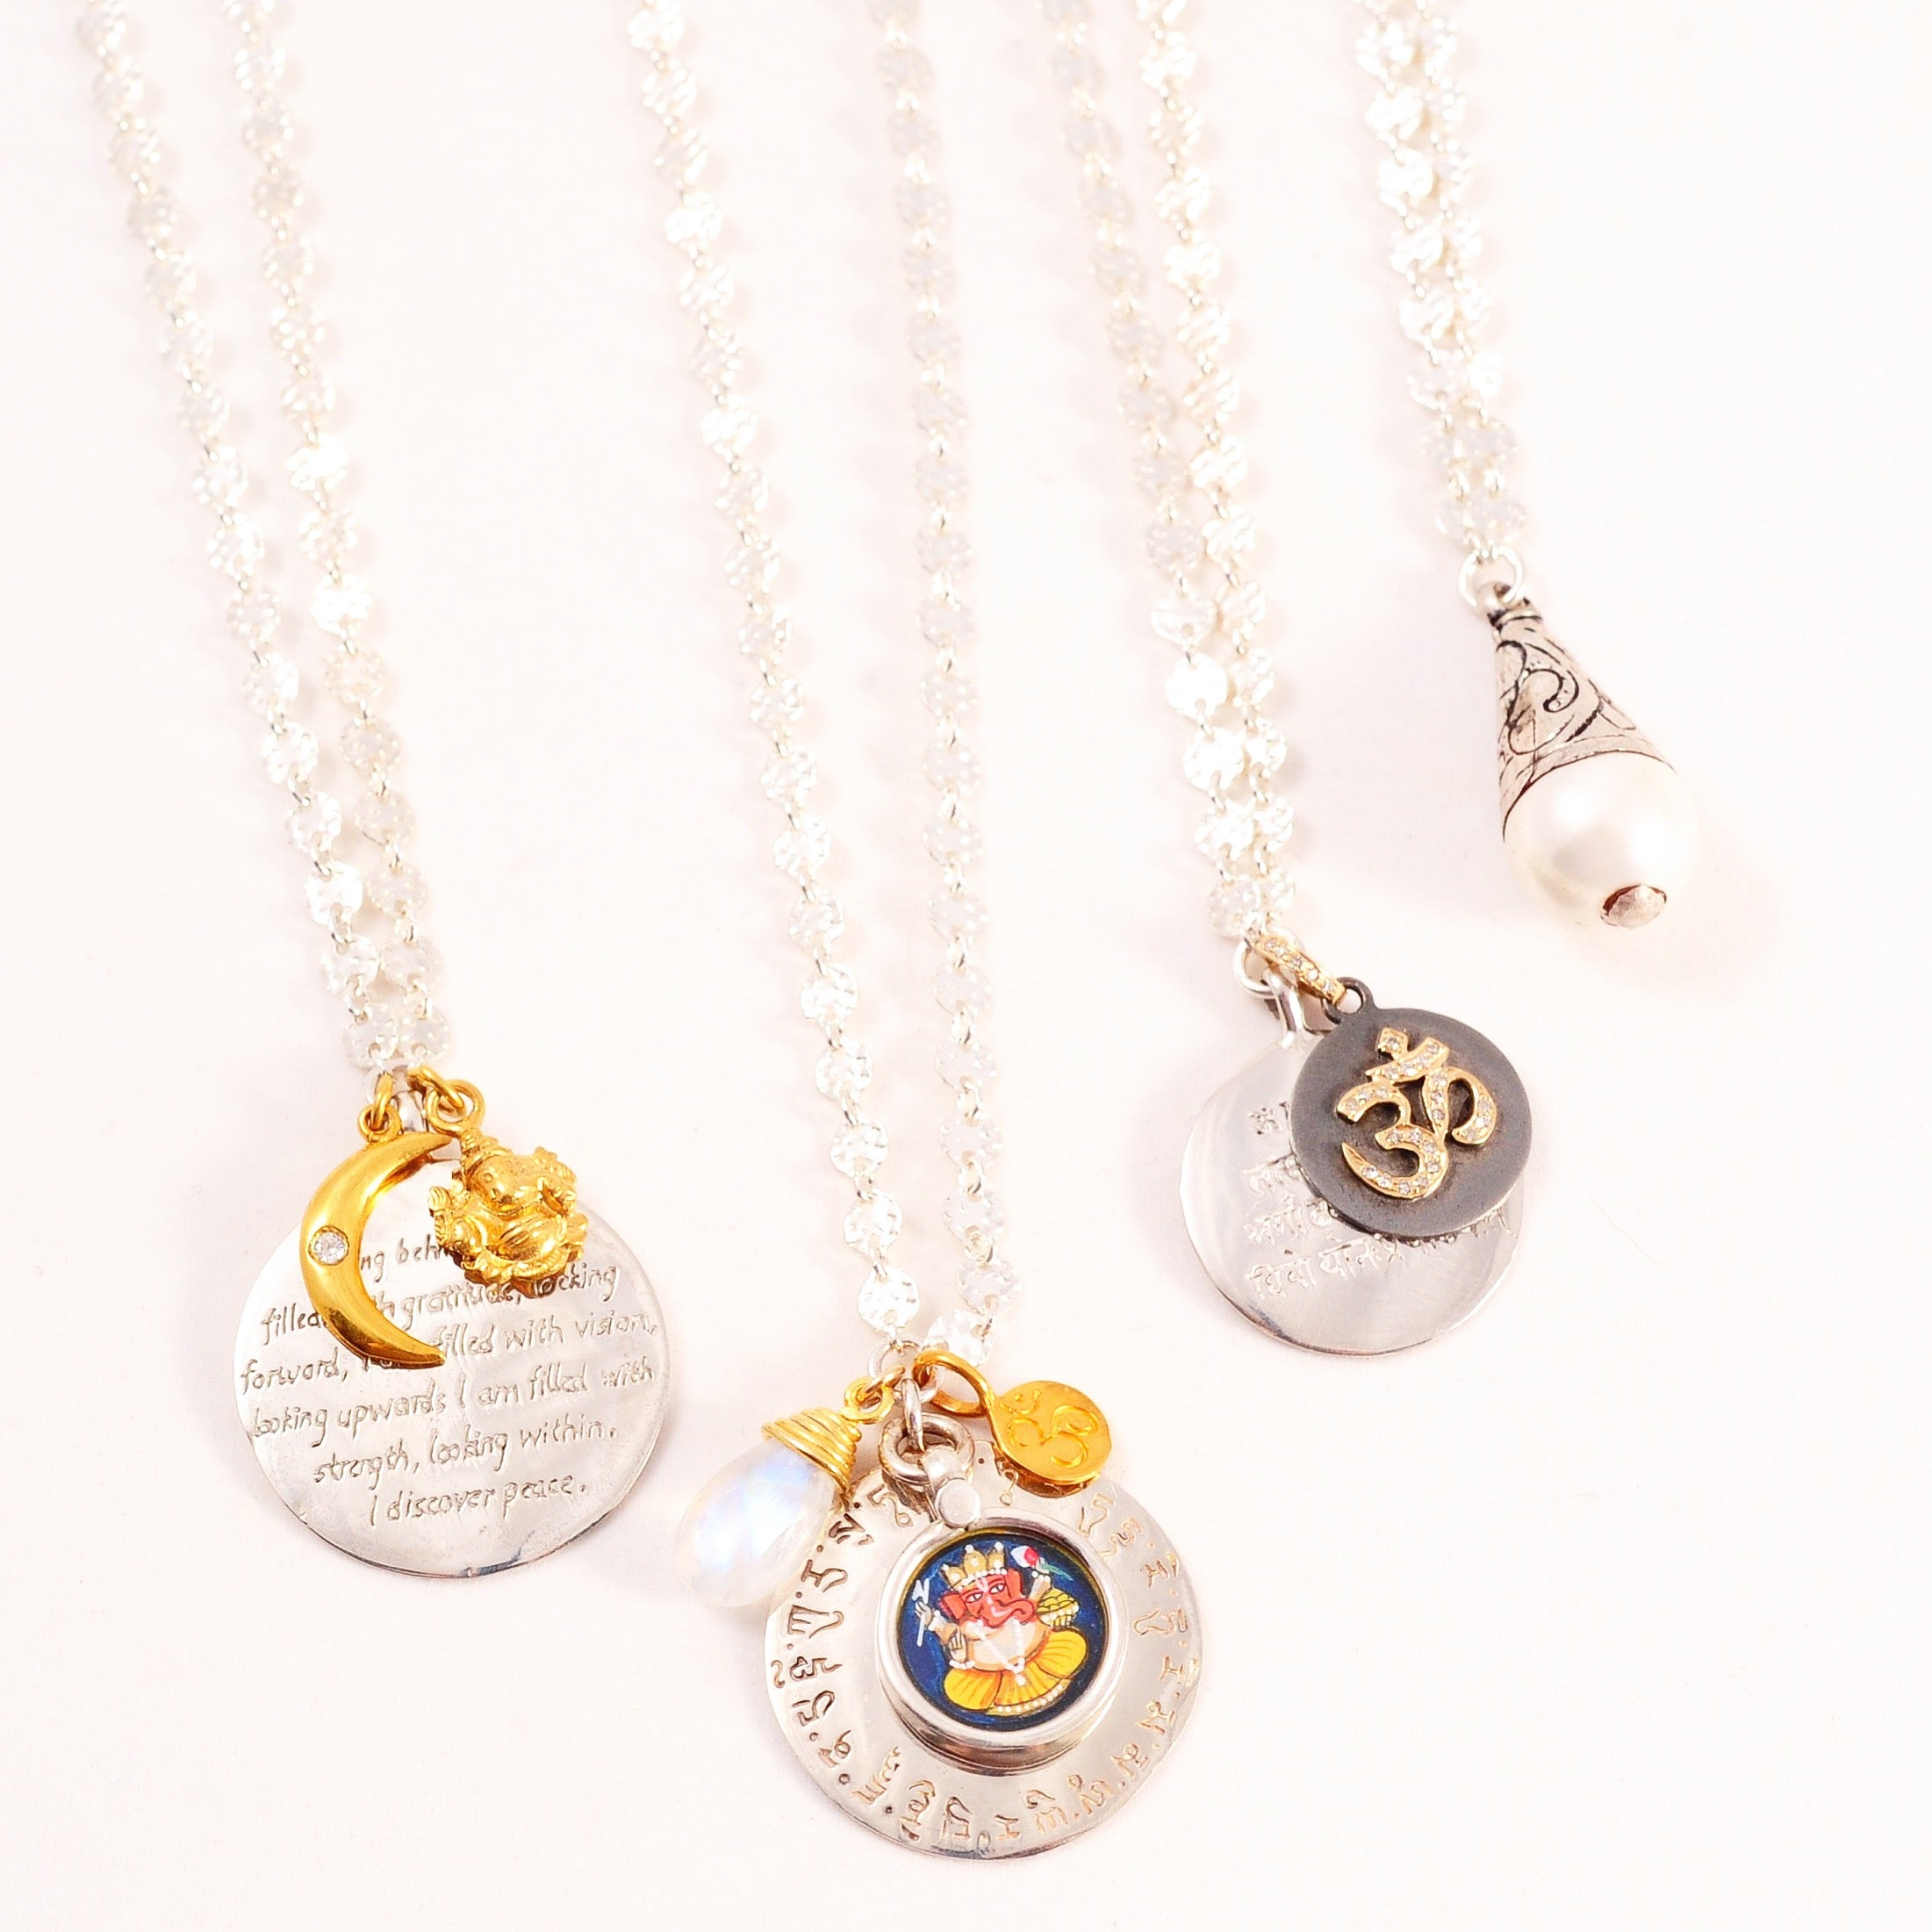 SILVER CHARM COLLECTION